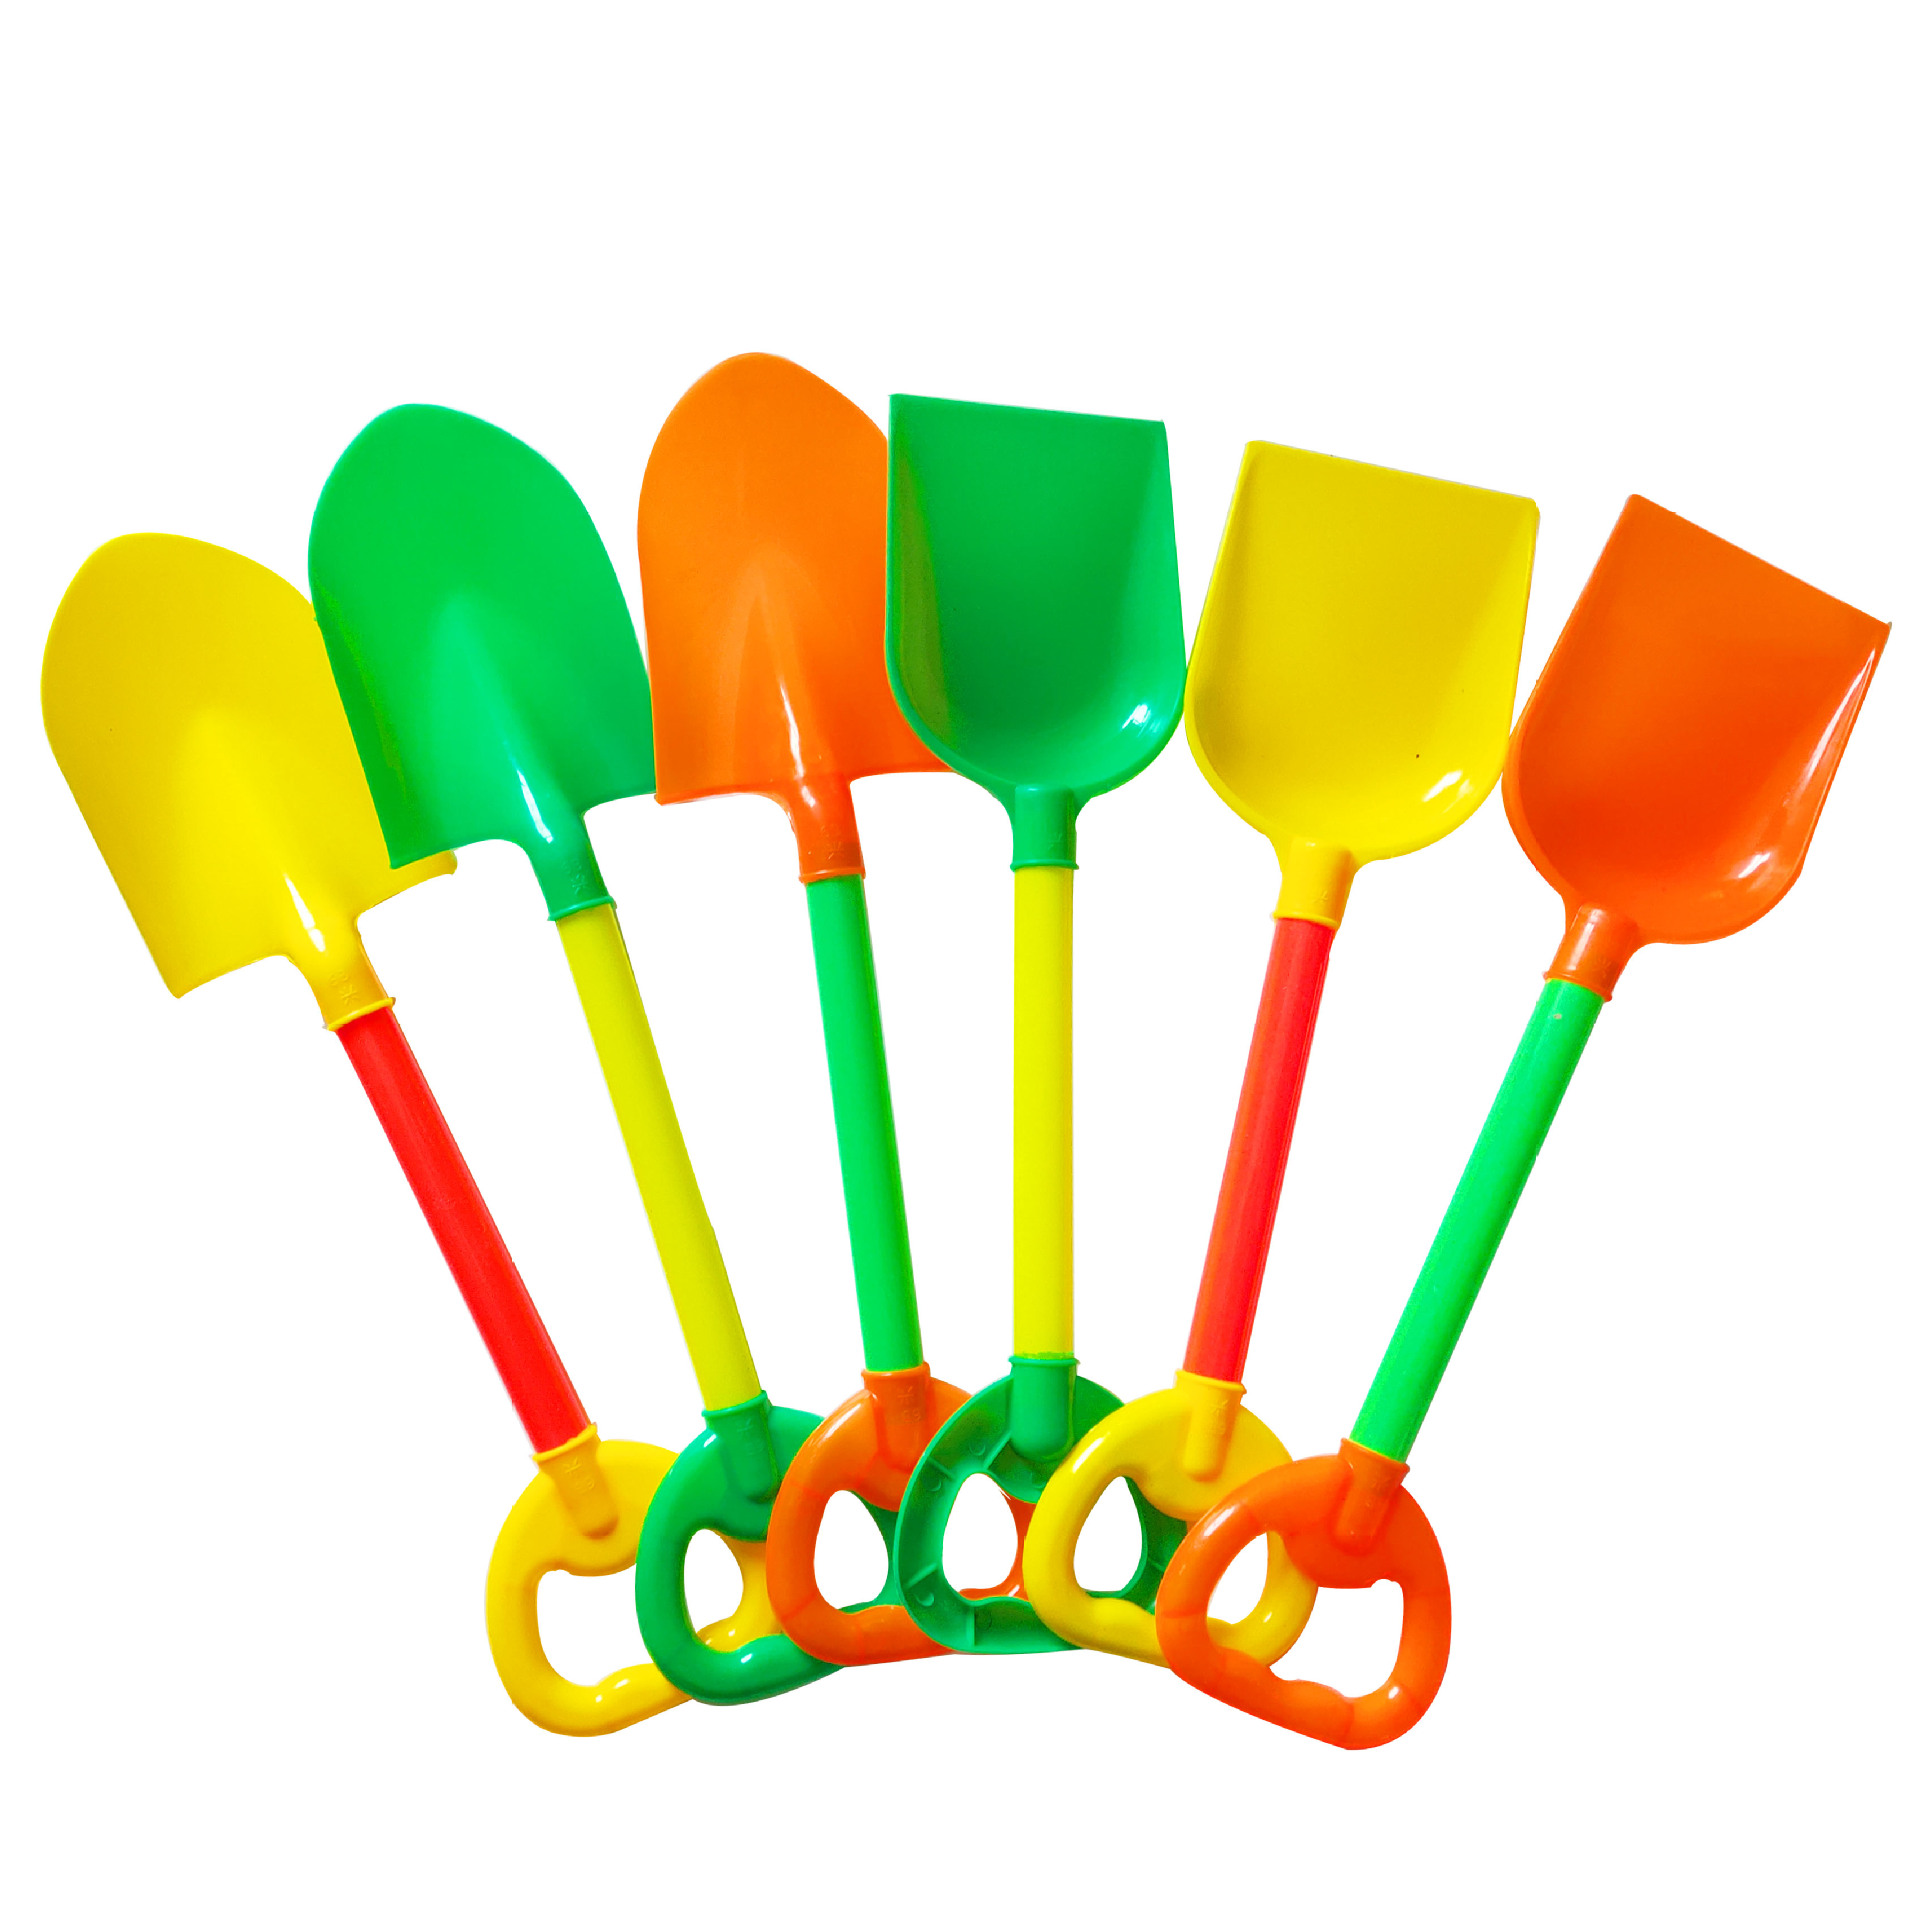 1pc Beach Toy Shovels Kids Play Sand Shovel Snow Tools Summer Seaside Dig Sand Shovel Soil Water Toys